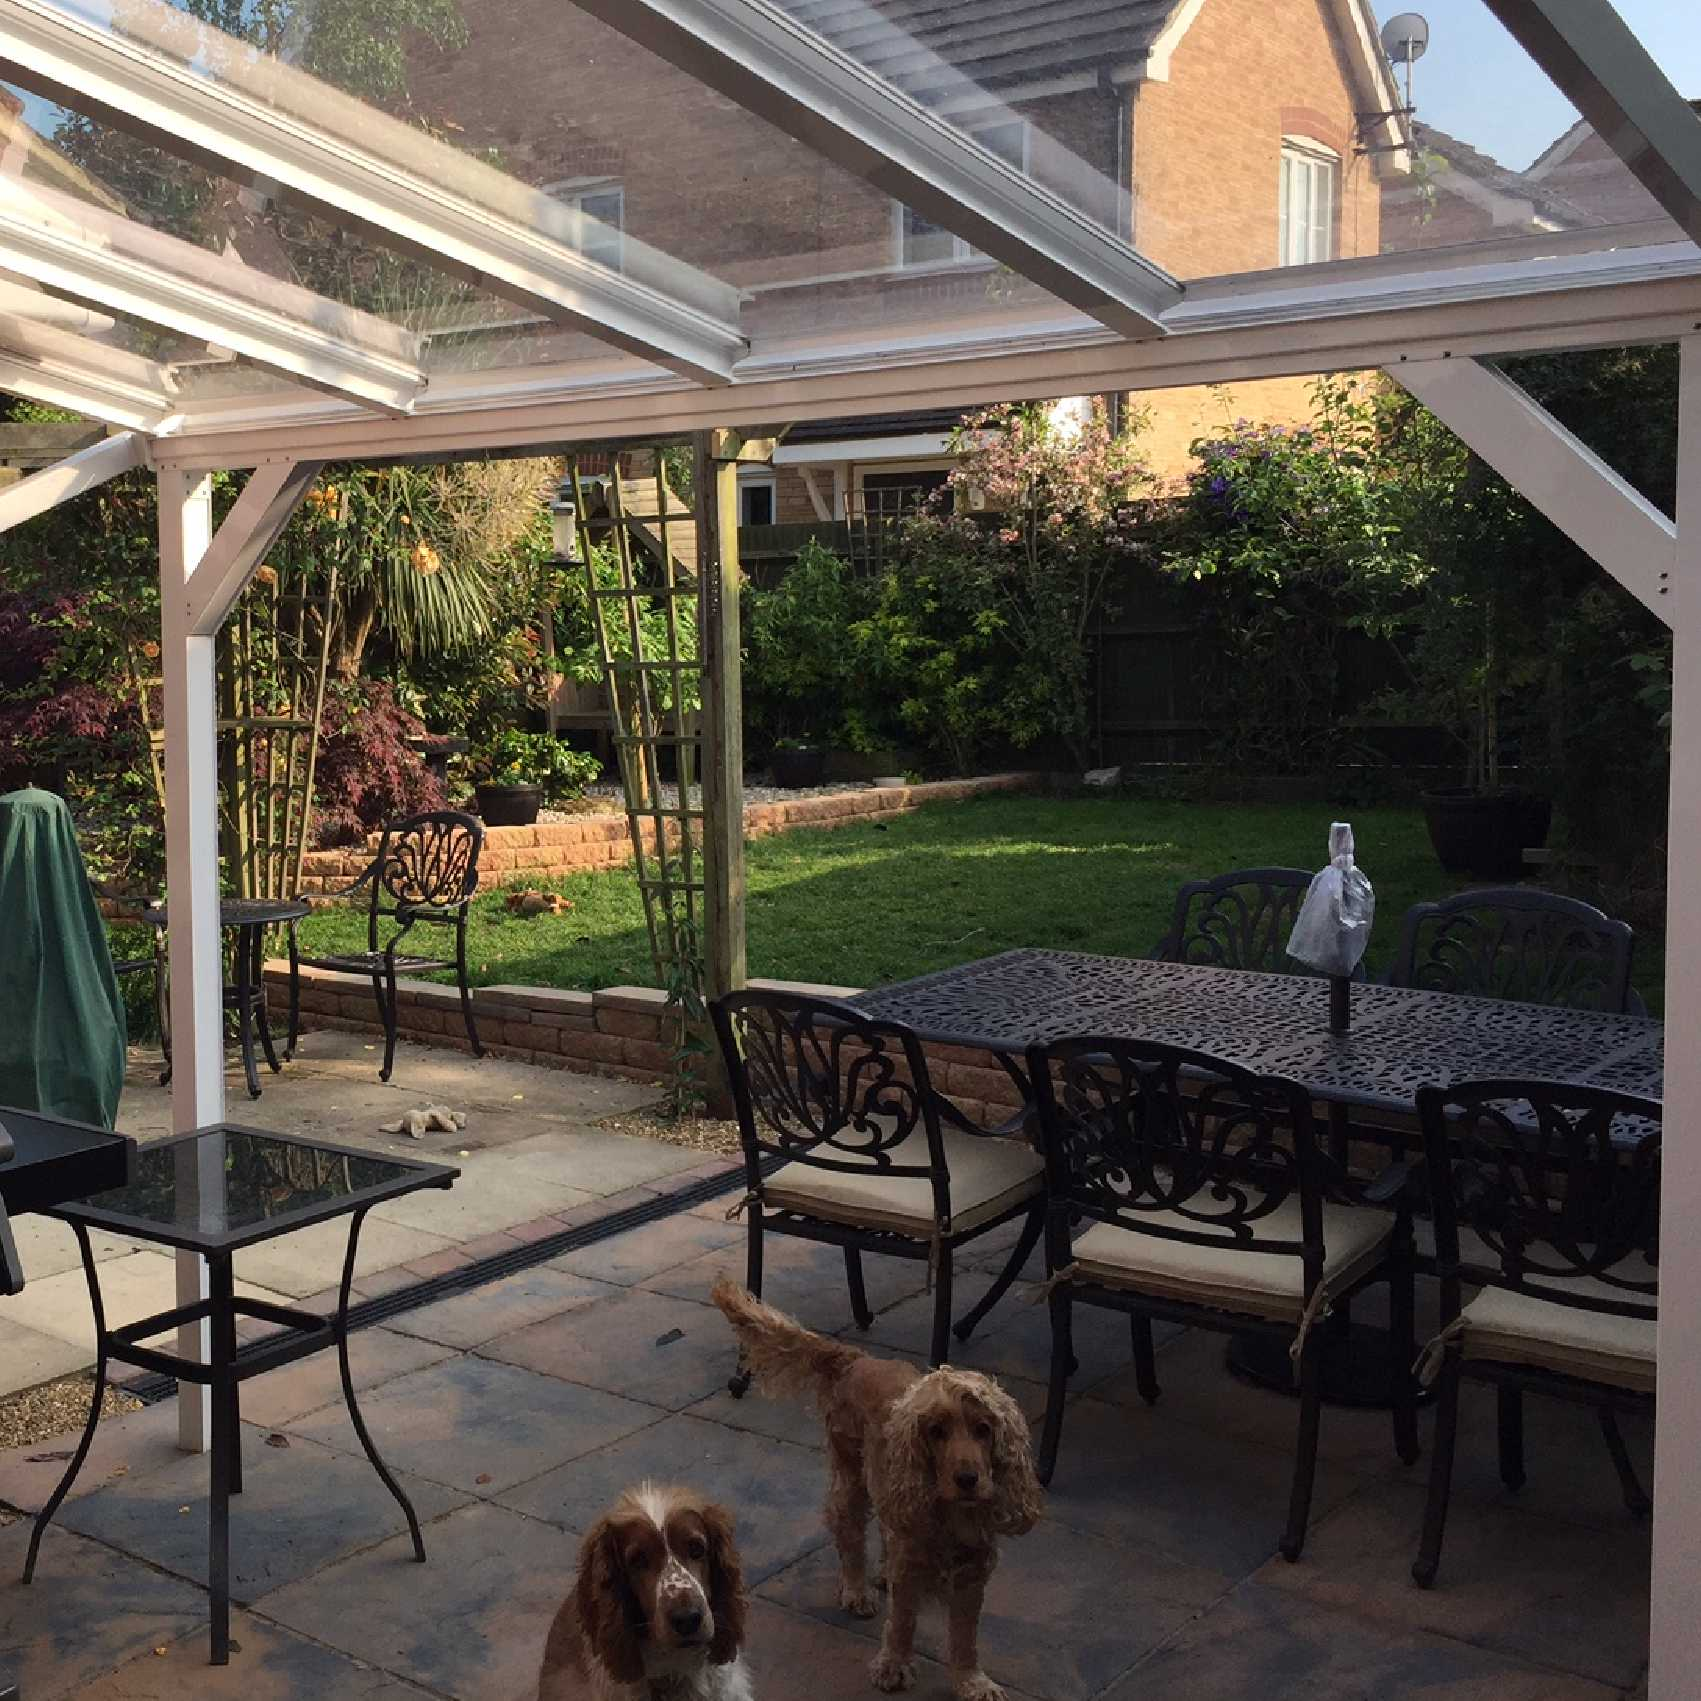 Affordable Omega Smart Lean-To Canopy with 6mm Glass Clear Plate Polycarbonate Glazing - 8.4m (W) x 3.5m (P), (4) Supporting Posts